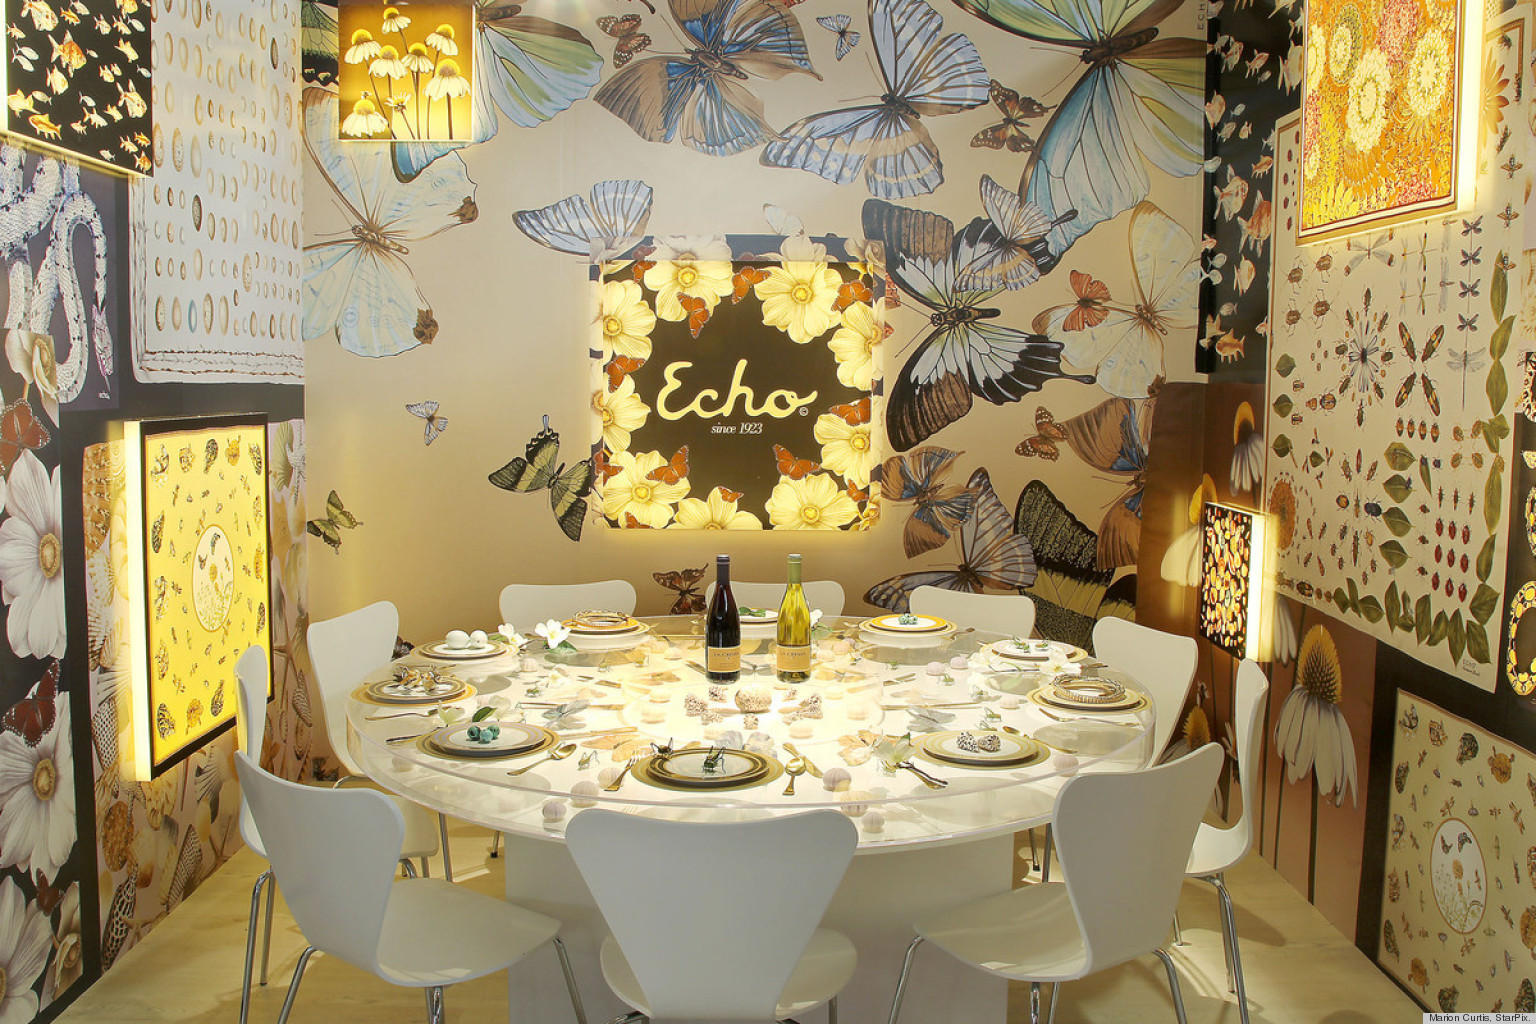 Diffa dining by design s most stunning tables